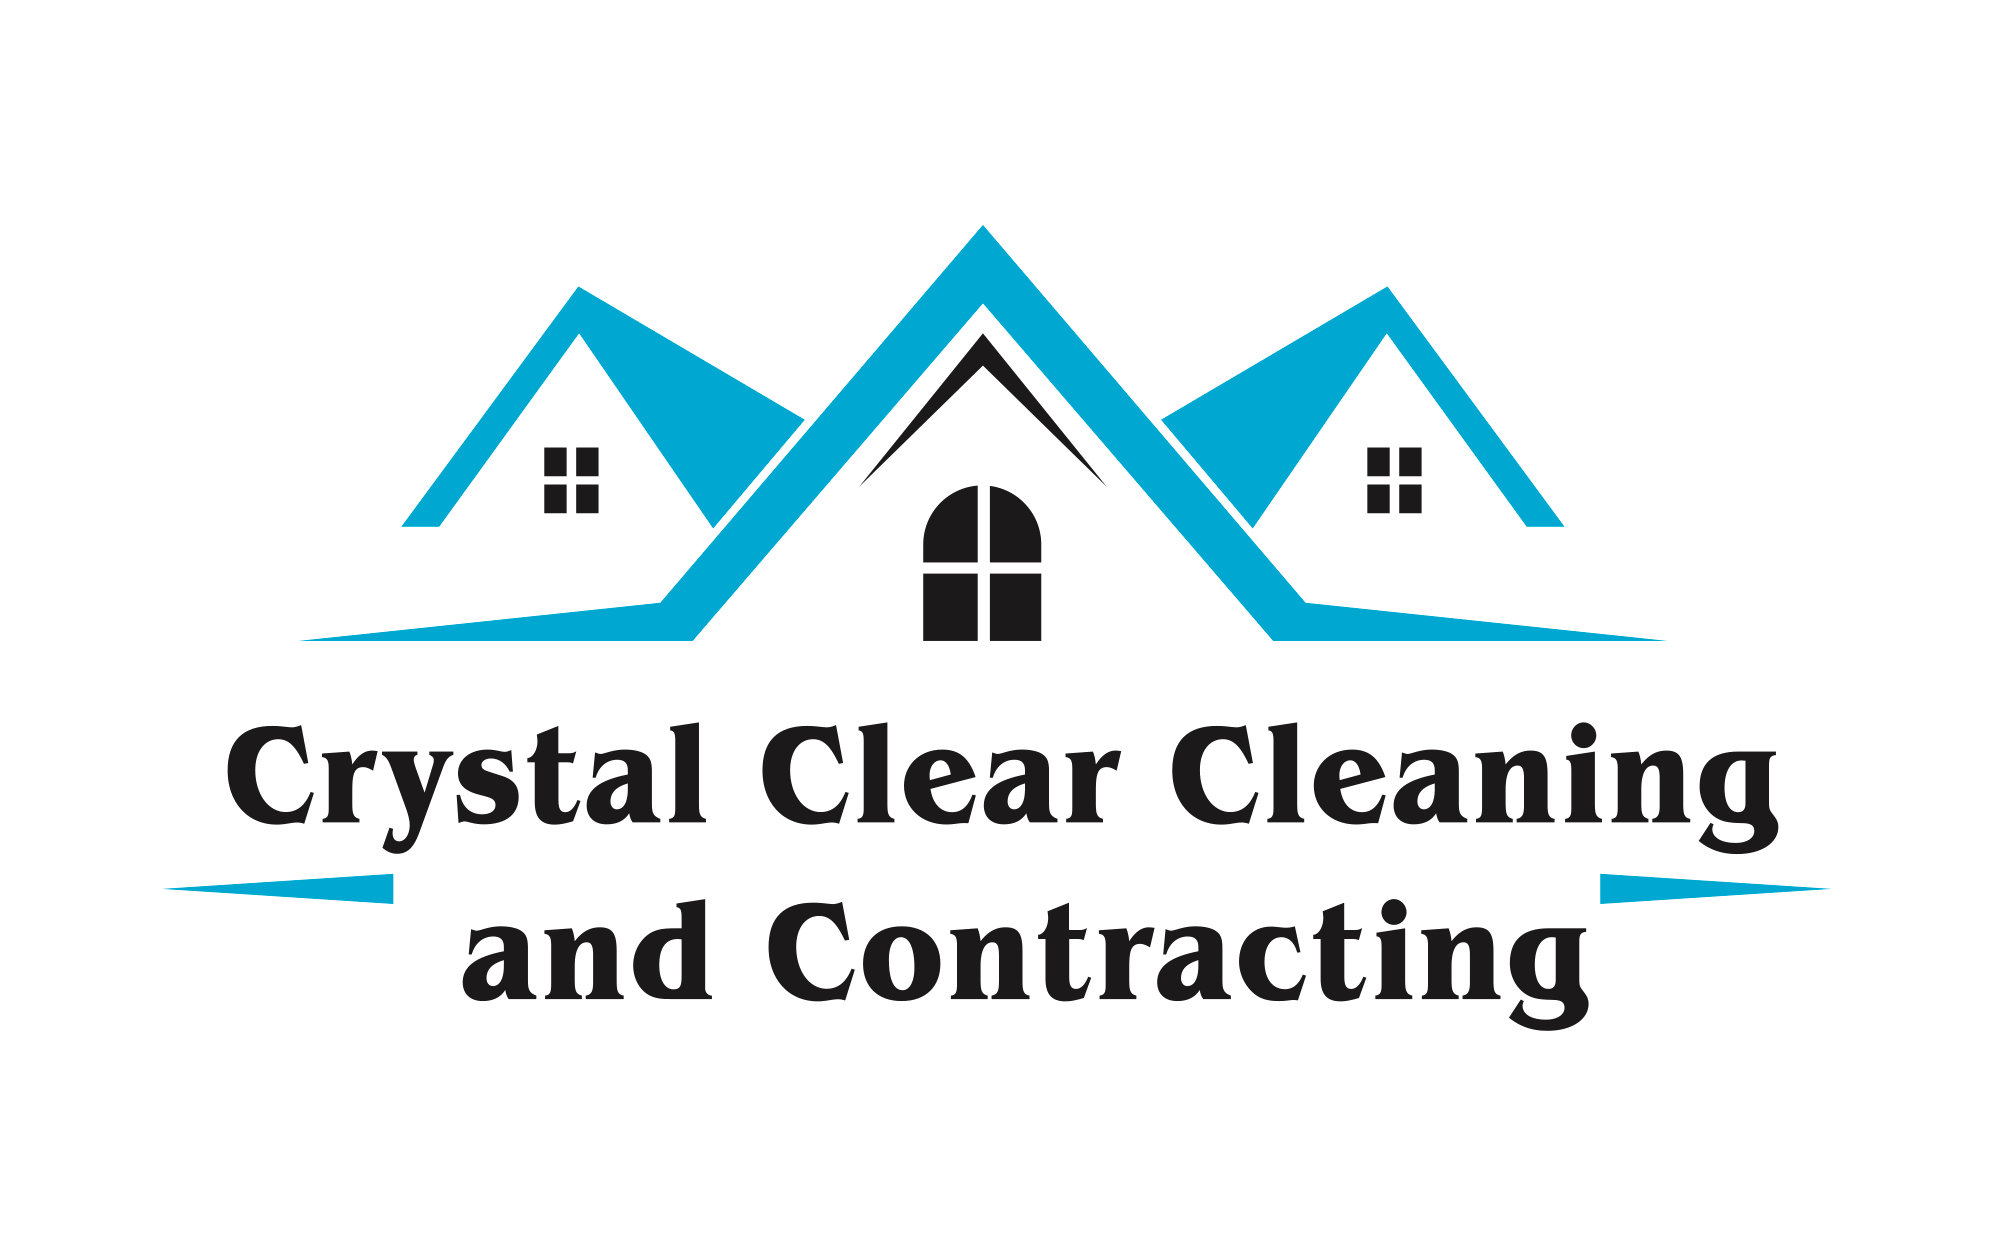 Crystal Clear Contractors